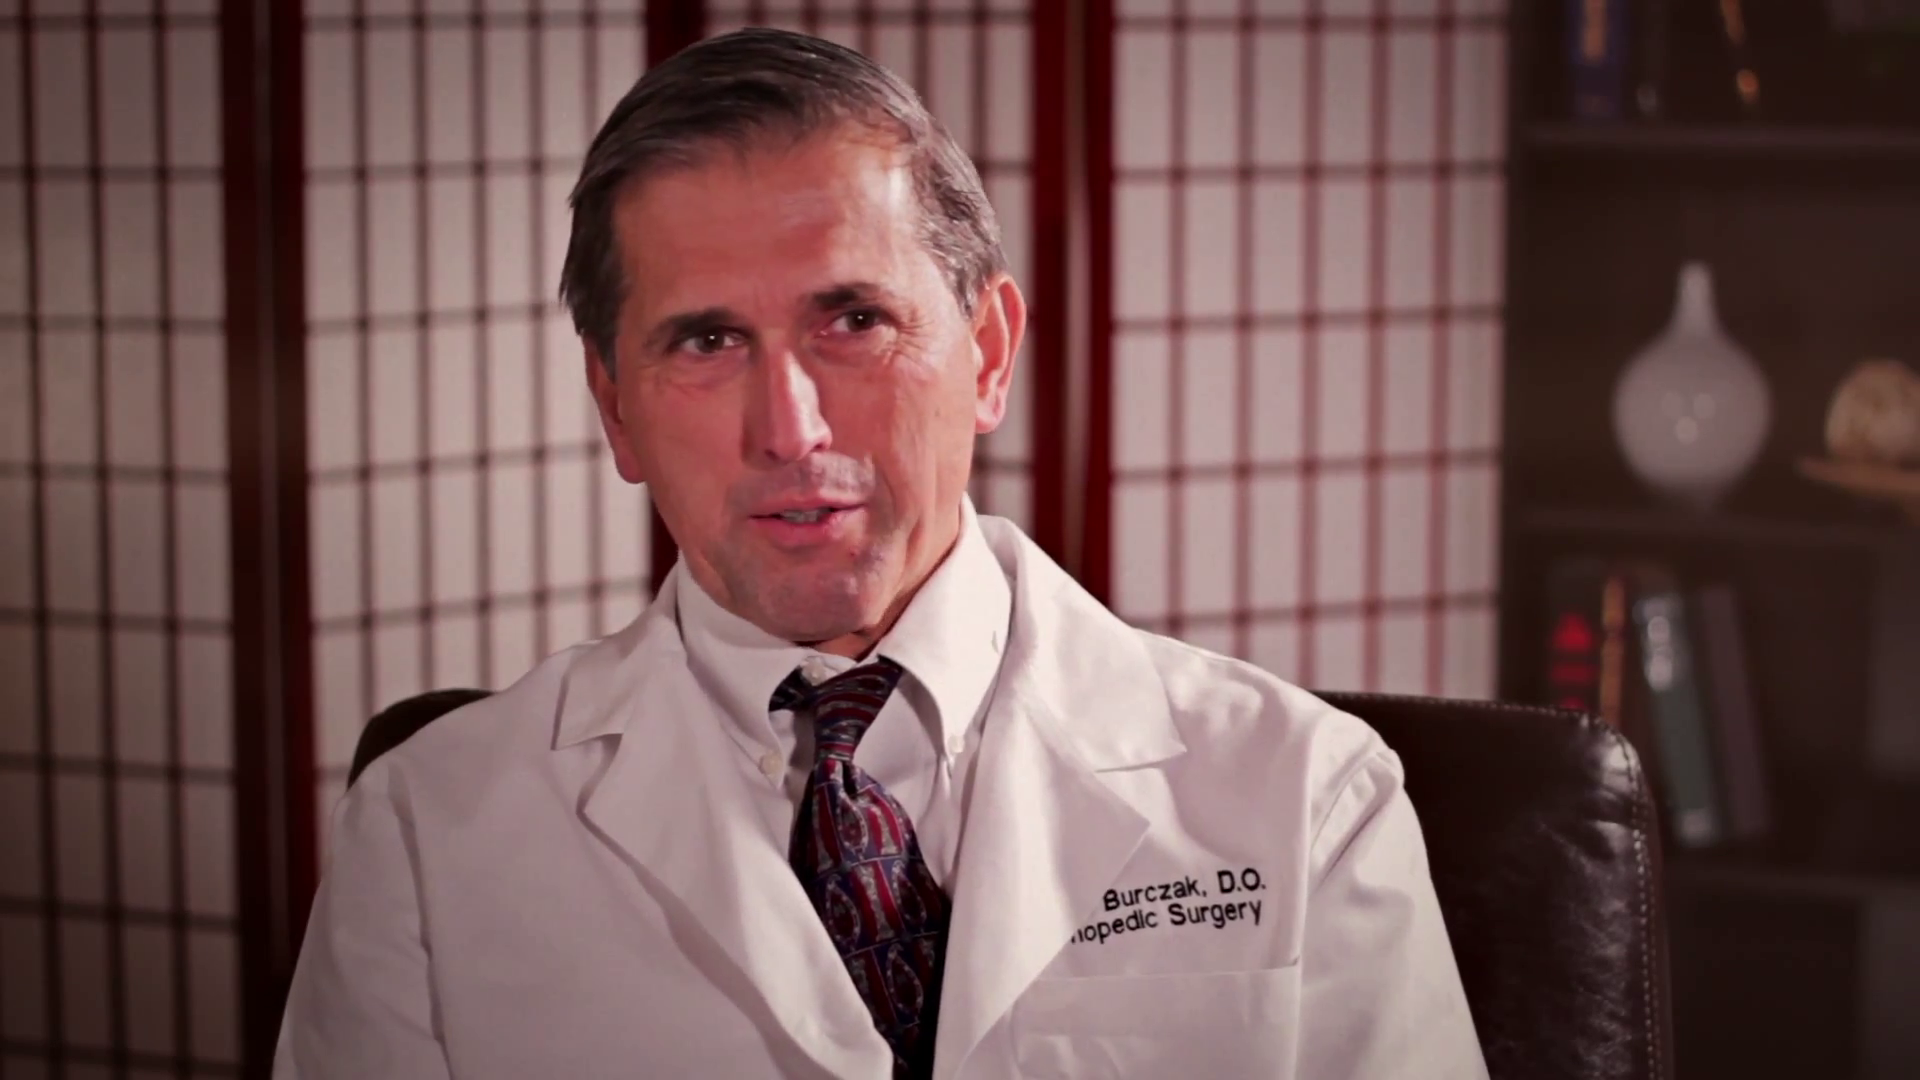 Dr. Burczak talks about his practice